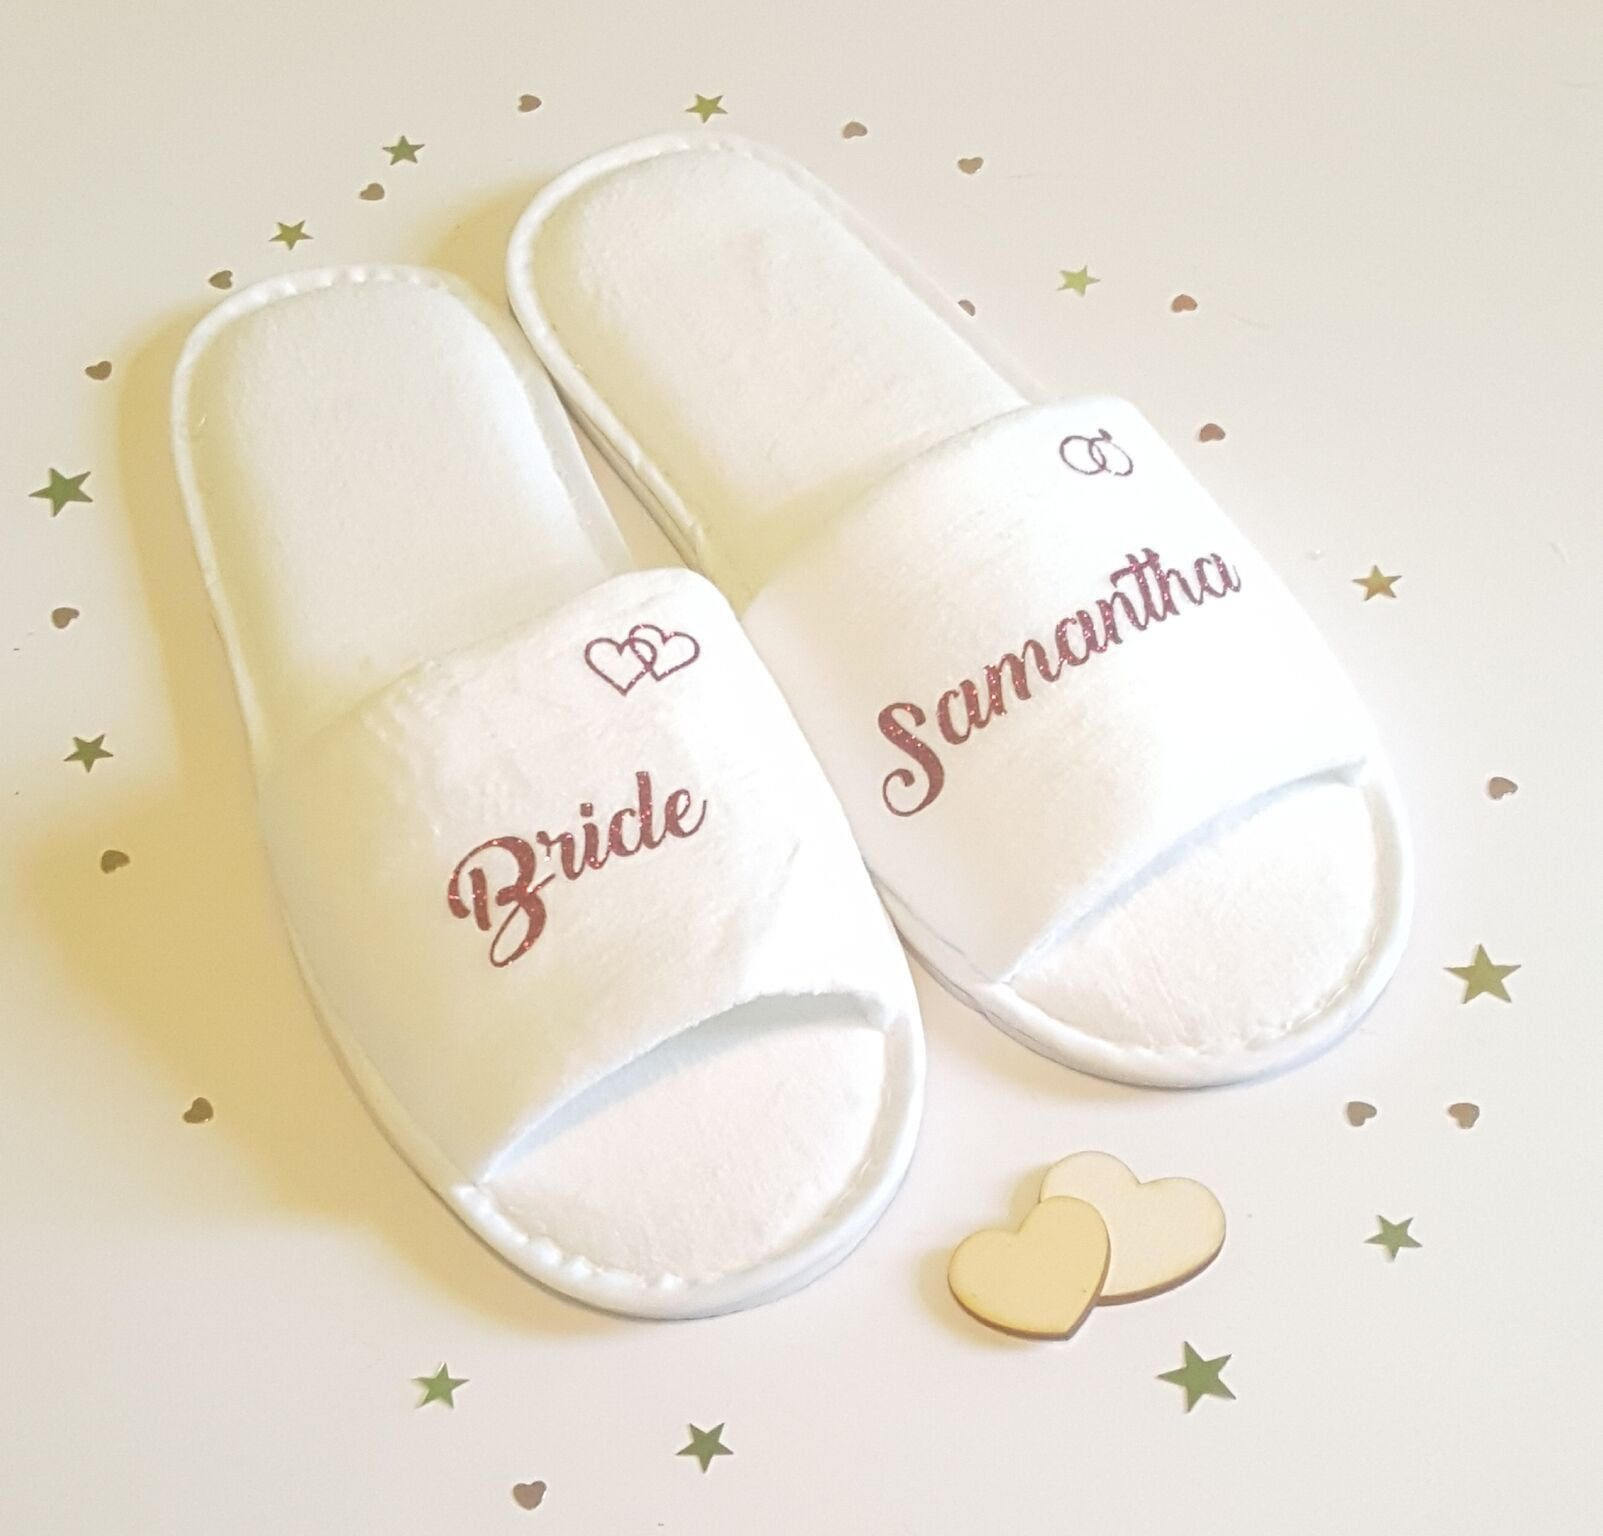 160f1525b9a Bridesmaid Slippers, Personalised Luxury Wedding Slippers, Bridal Party  Slippers, Bride Slippers, Wedding Slippers, Hen Party, Spa Slippers